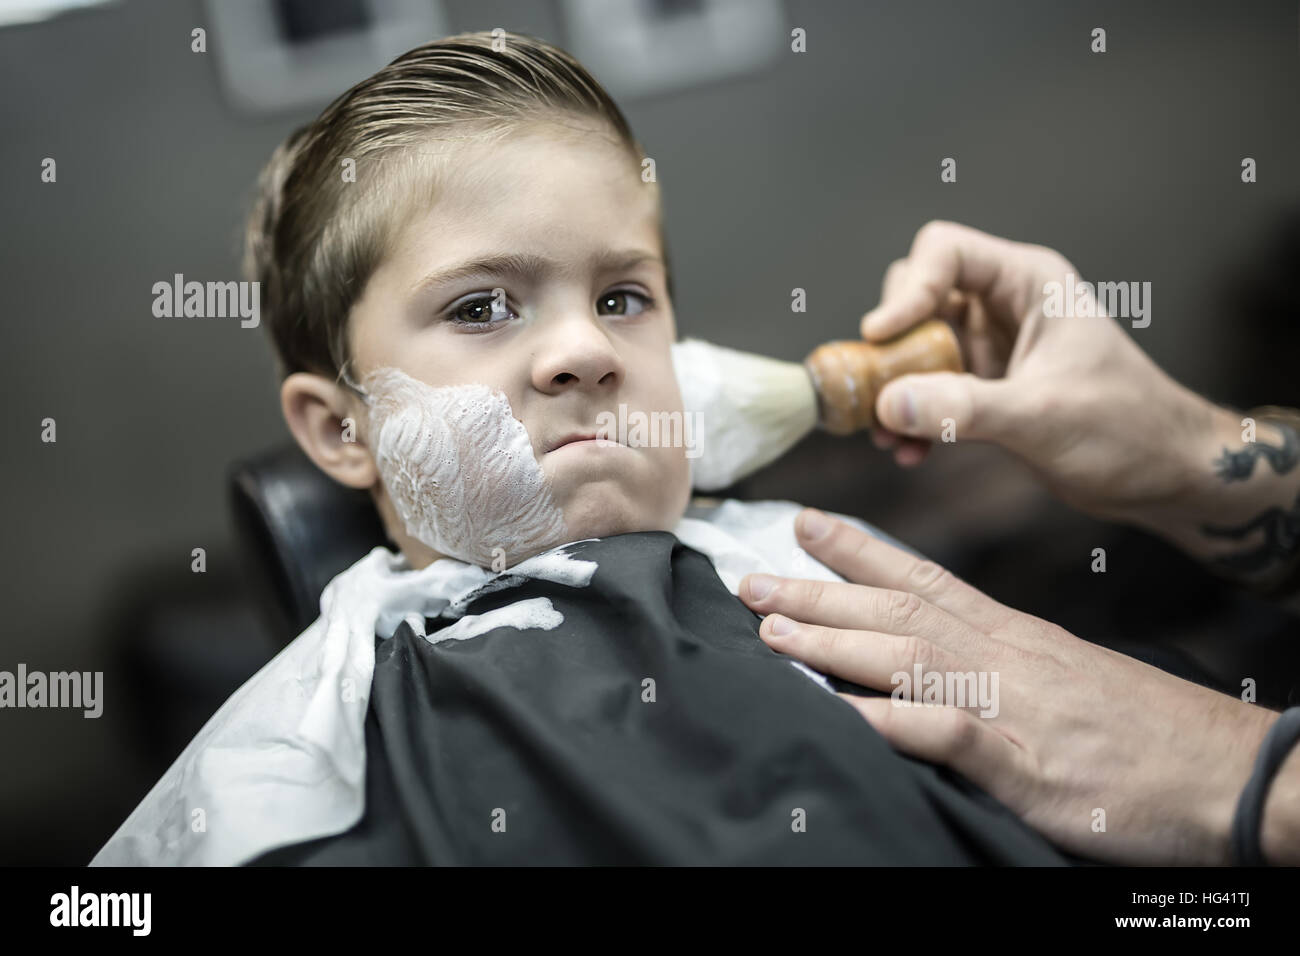 Humorous shaving of little boy - Stock Image